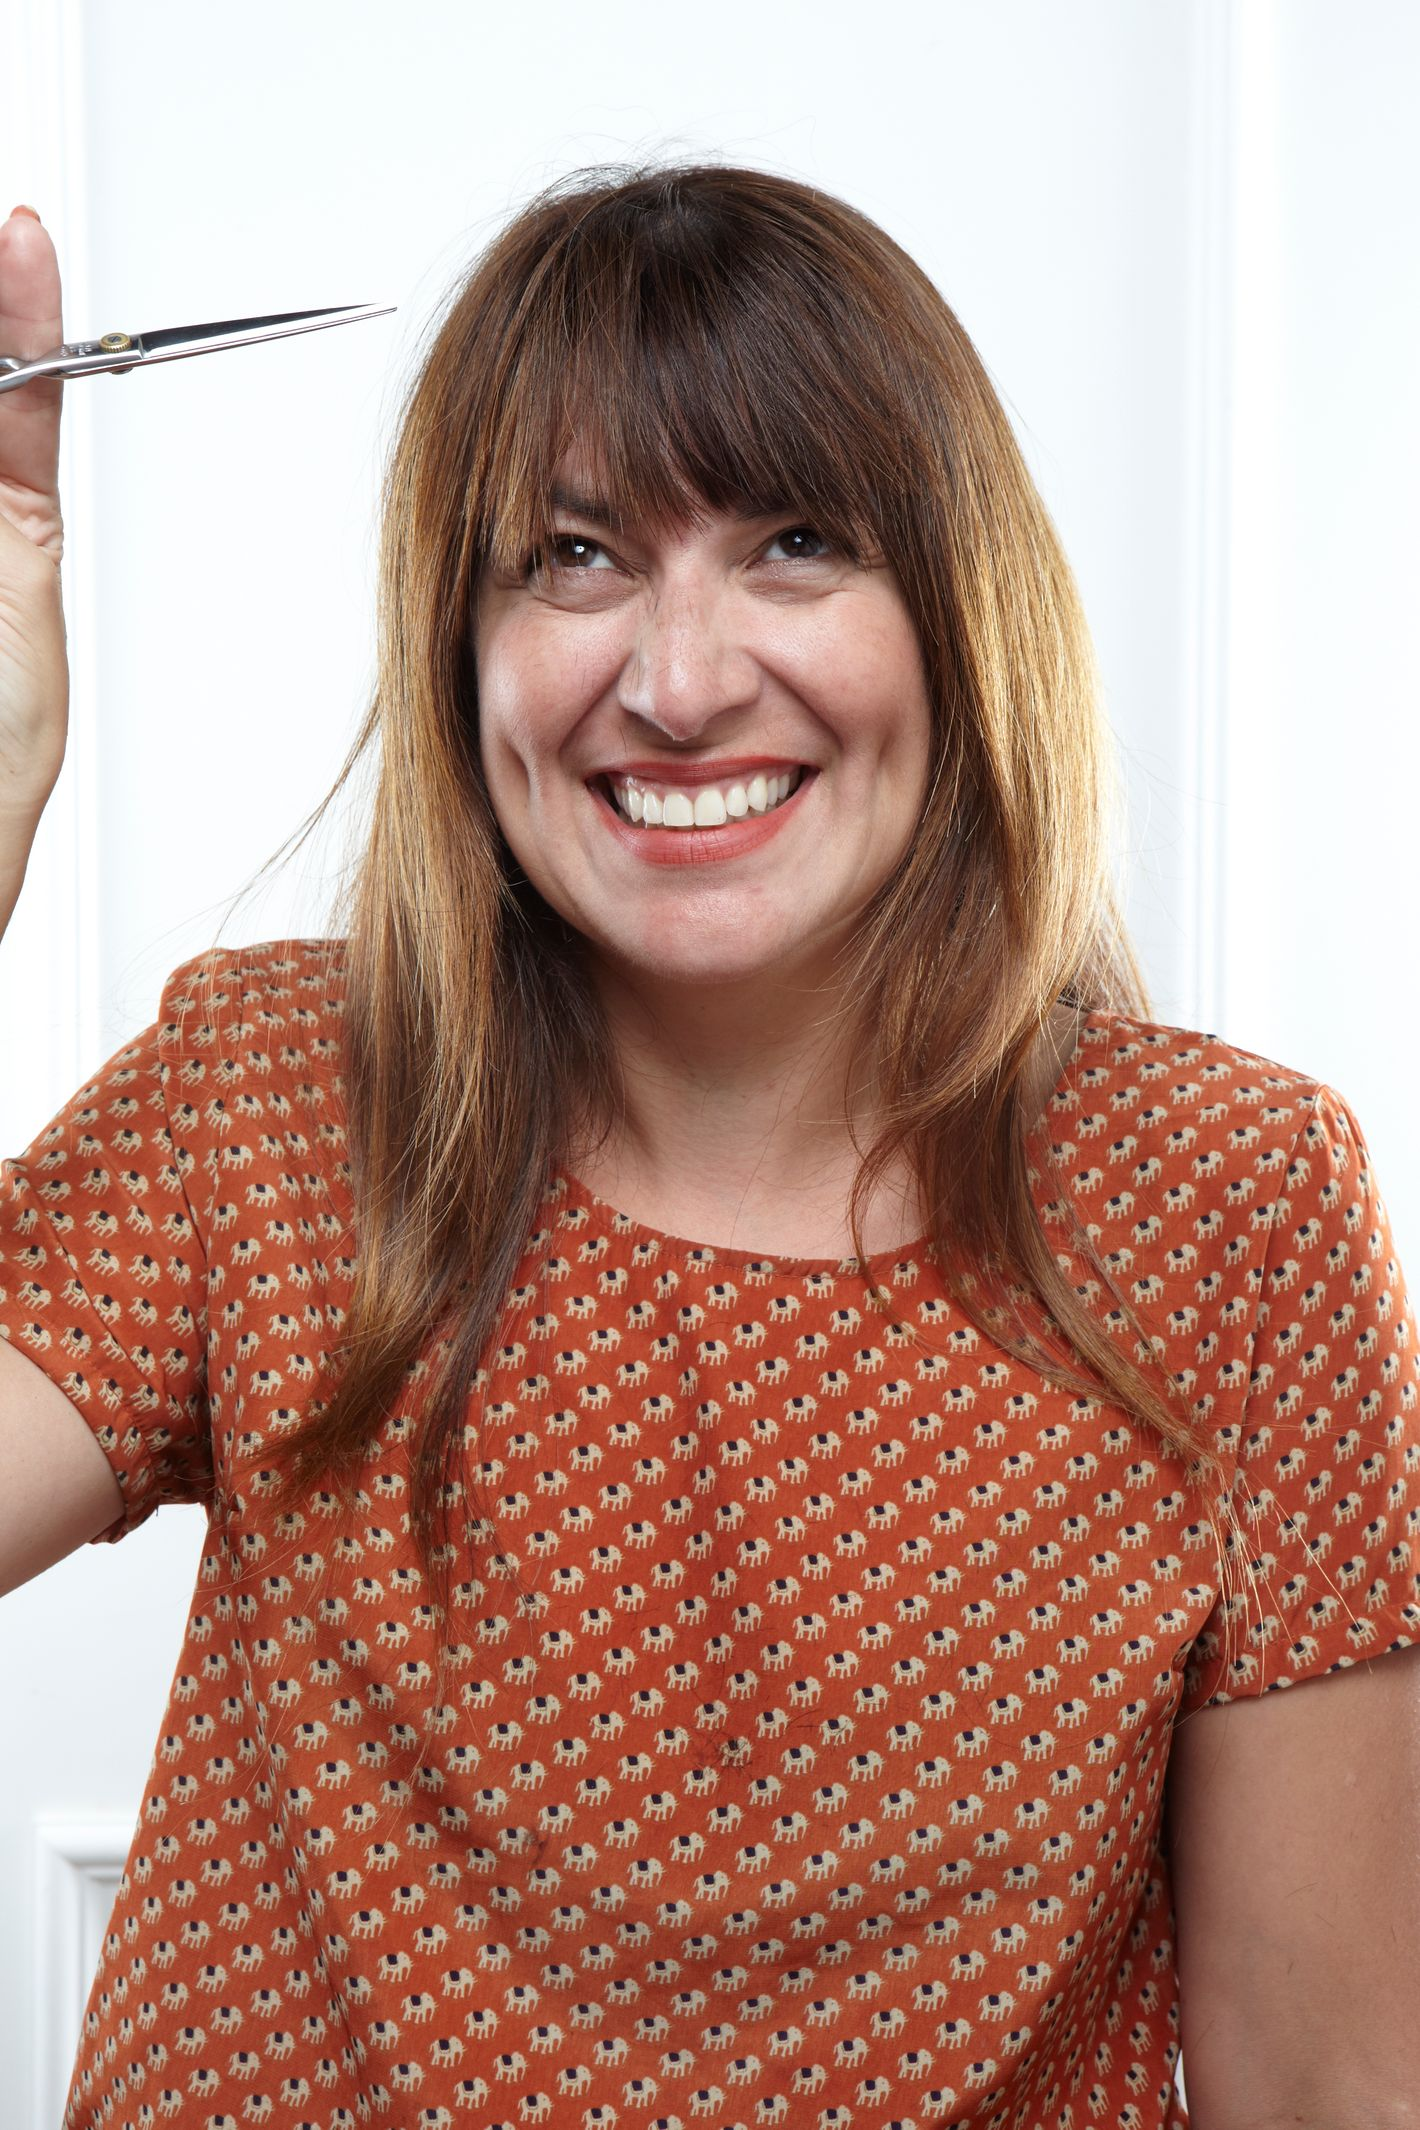 Photos How To Cut Your Own Bangs